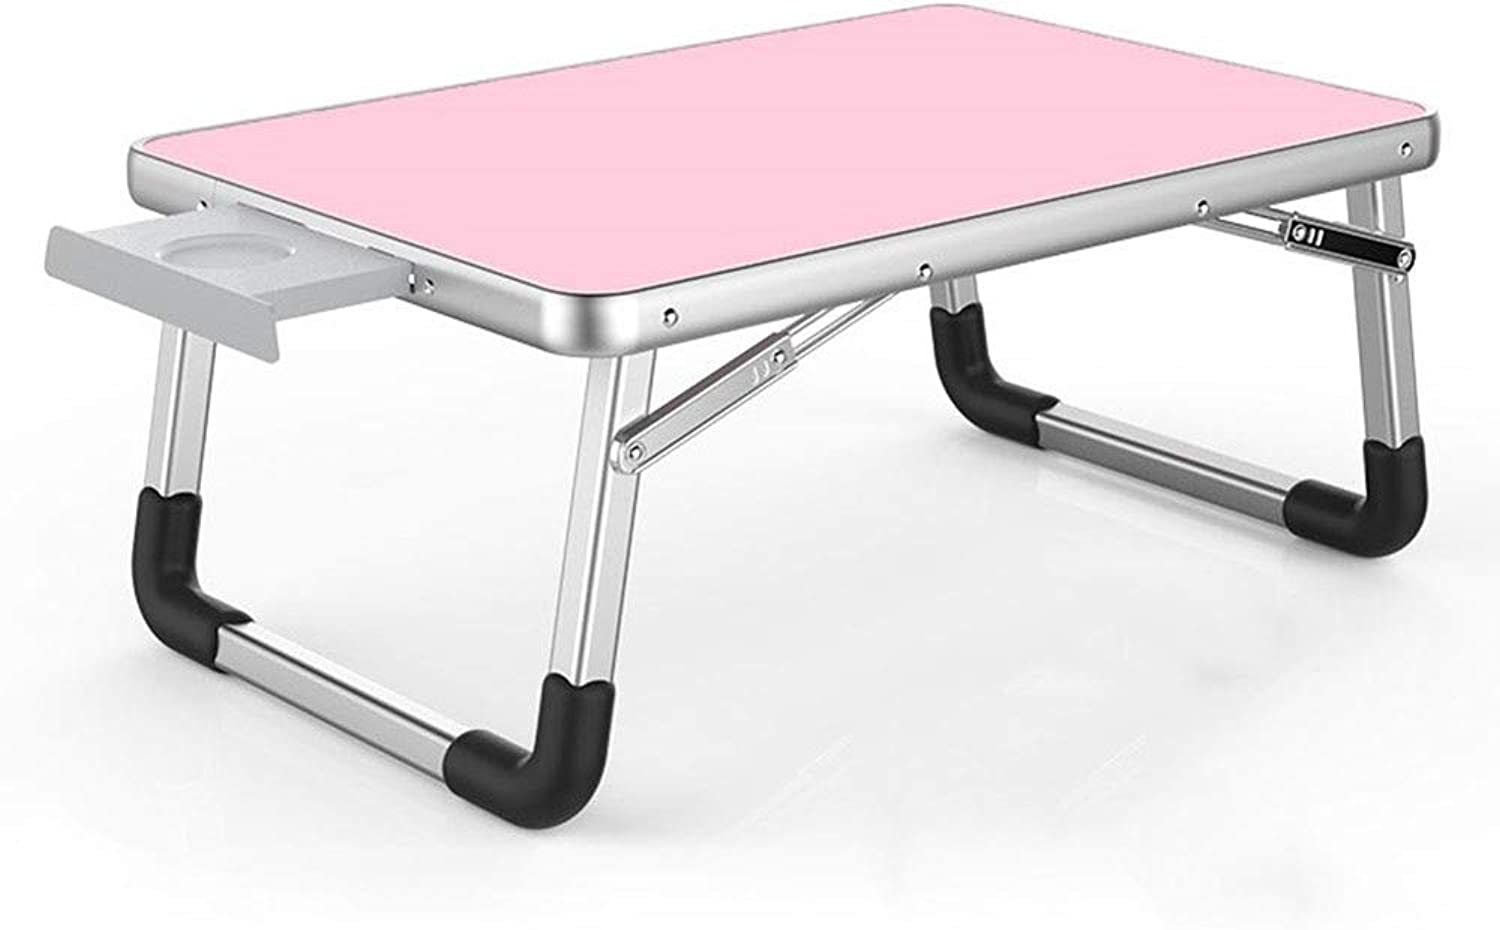 Portable Bed Laptop Table Coffee   Breakfast   Writing   Learning   Reading Multifunction Foldable Small Table L60×W40cm GW (color   Pink)